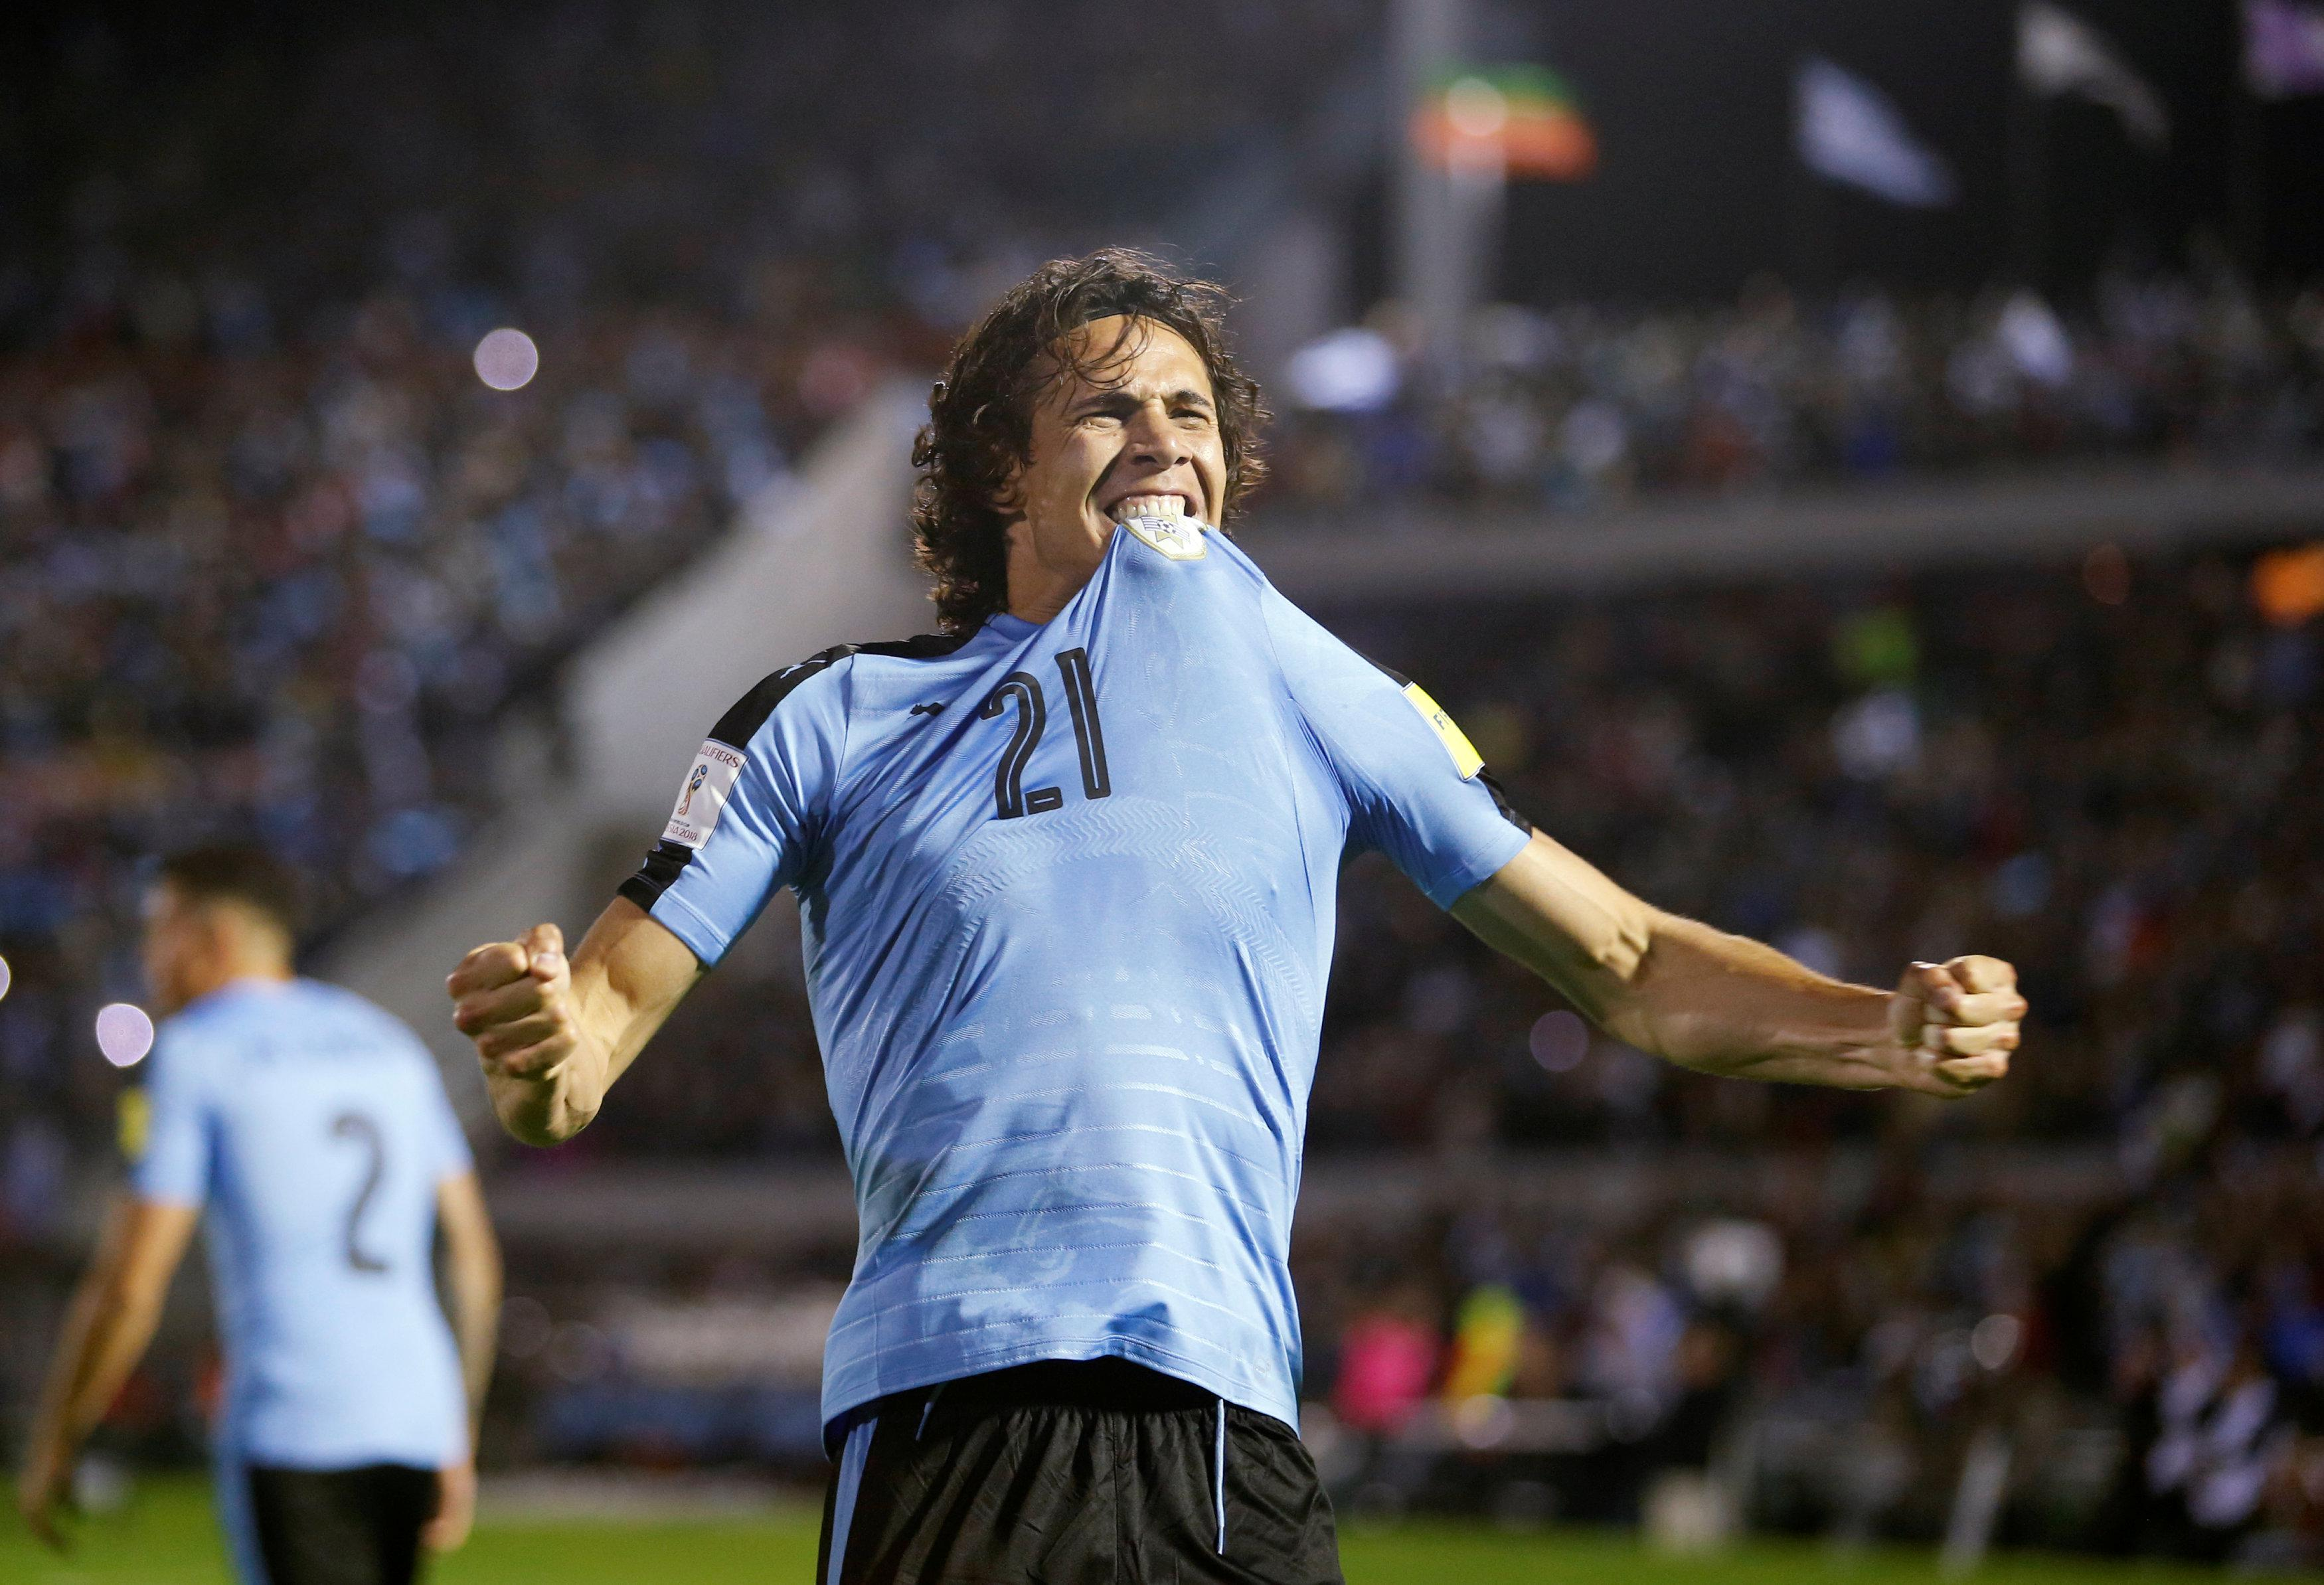 Cavani is poised to go the Russia 2018 after firing Uruguay to the World Cup